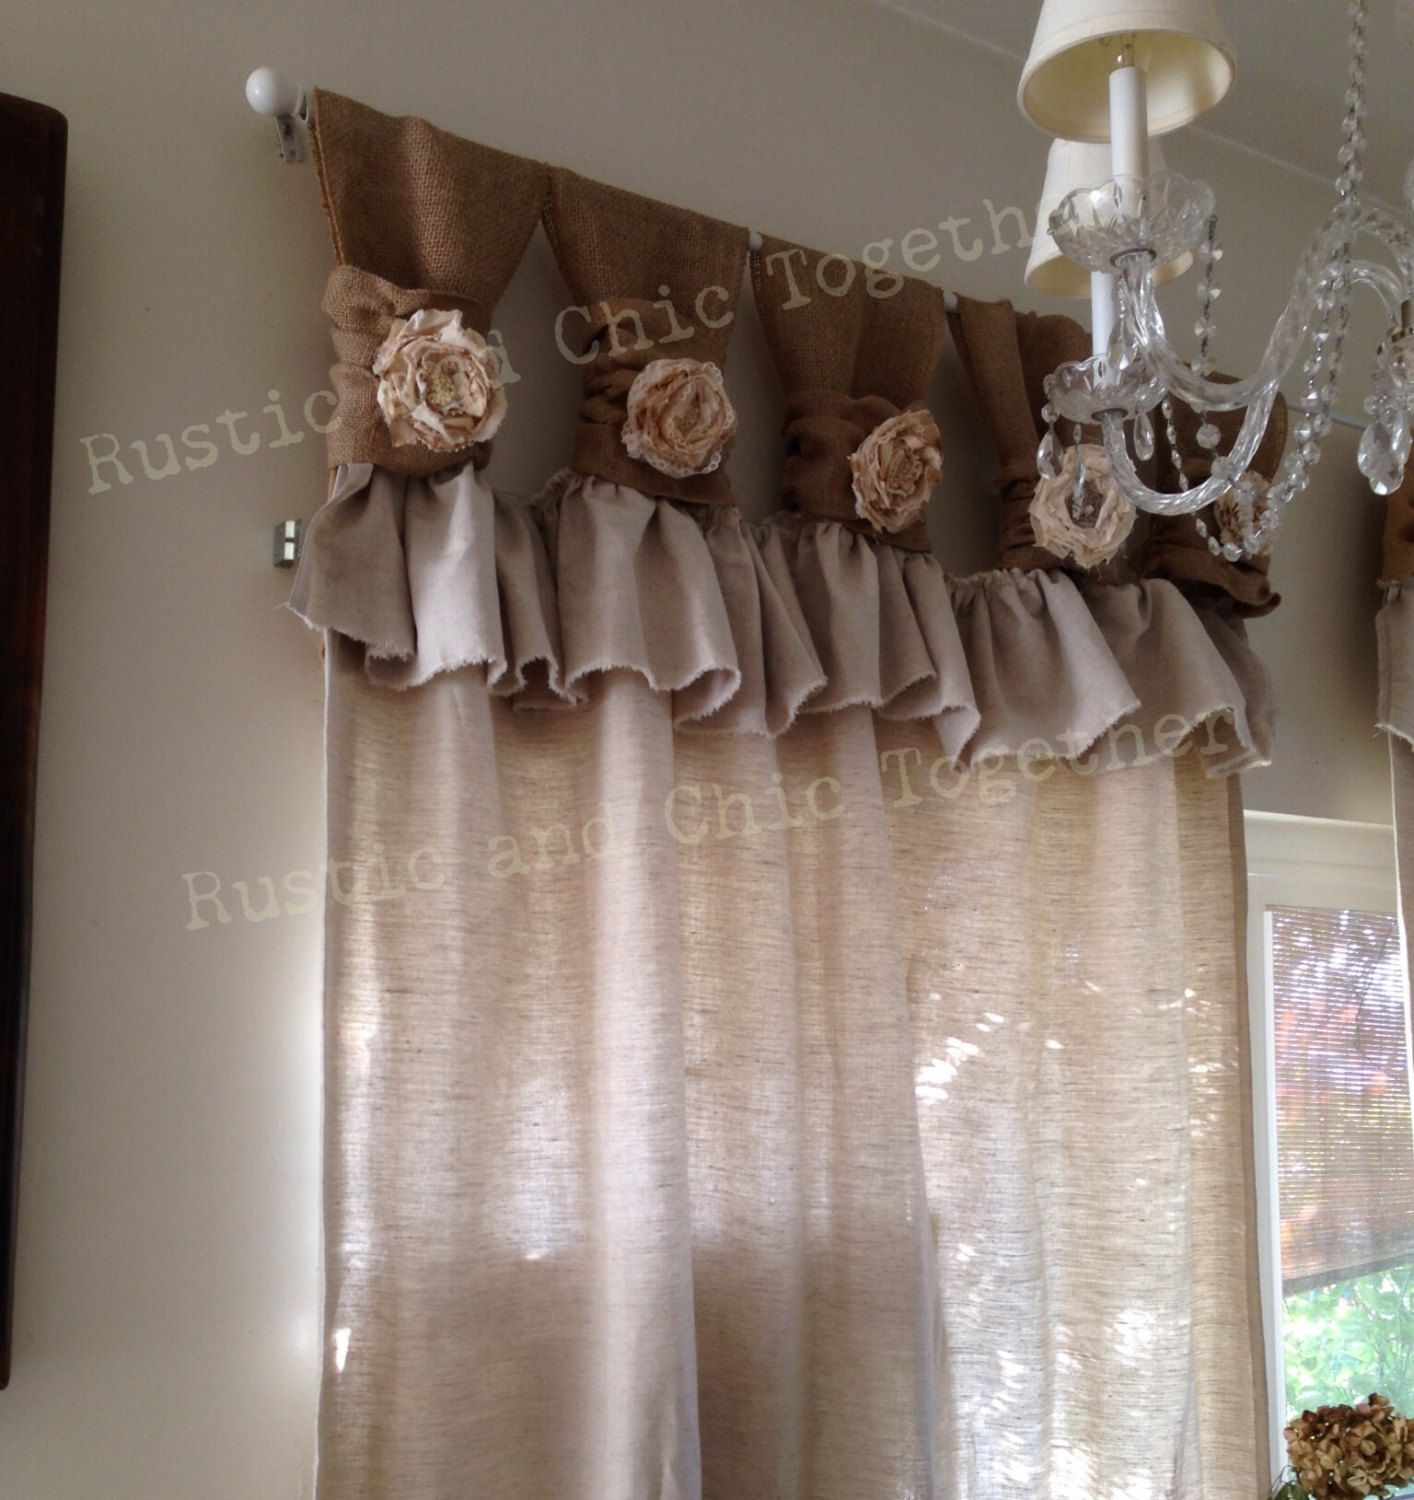 Drop cloth curtains dyed - Burlap Wide Ruched Tabs Curtains Tea Dyed By Rusticchictogether